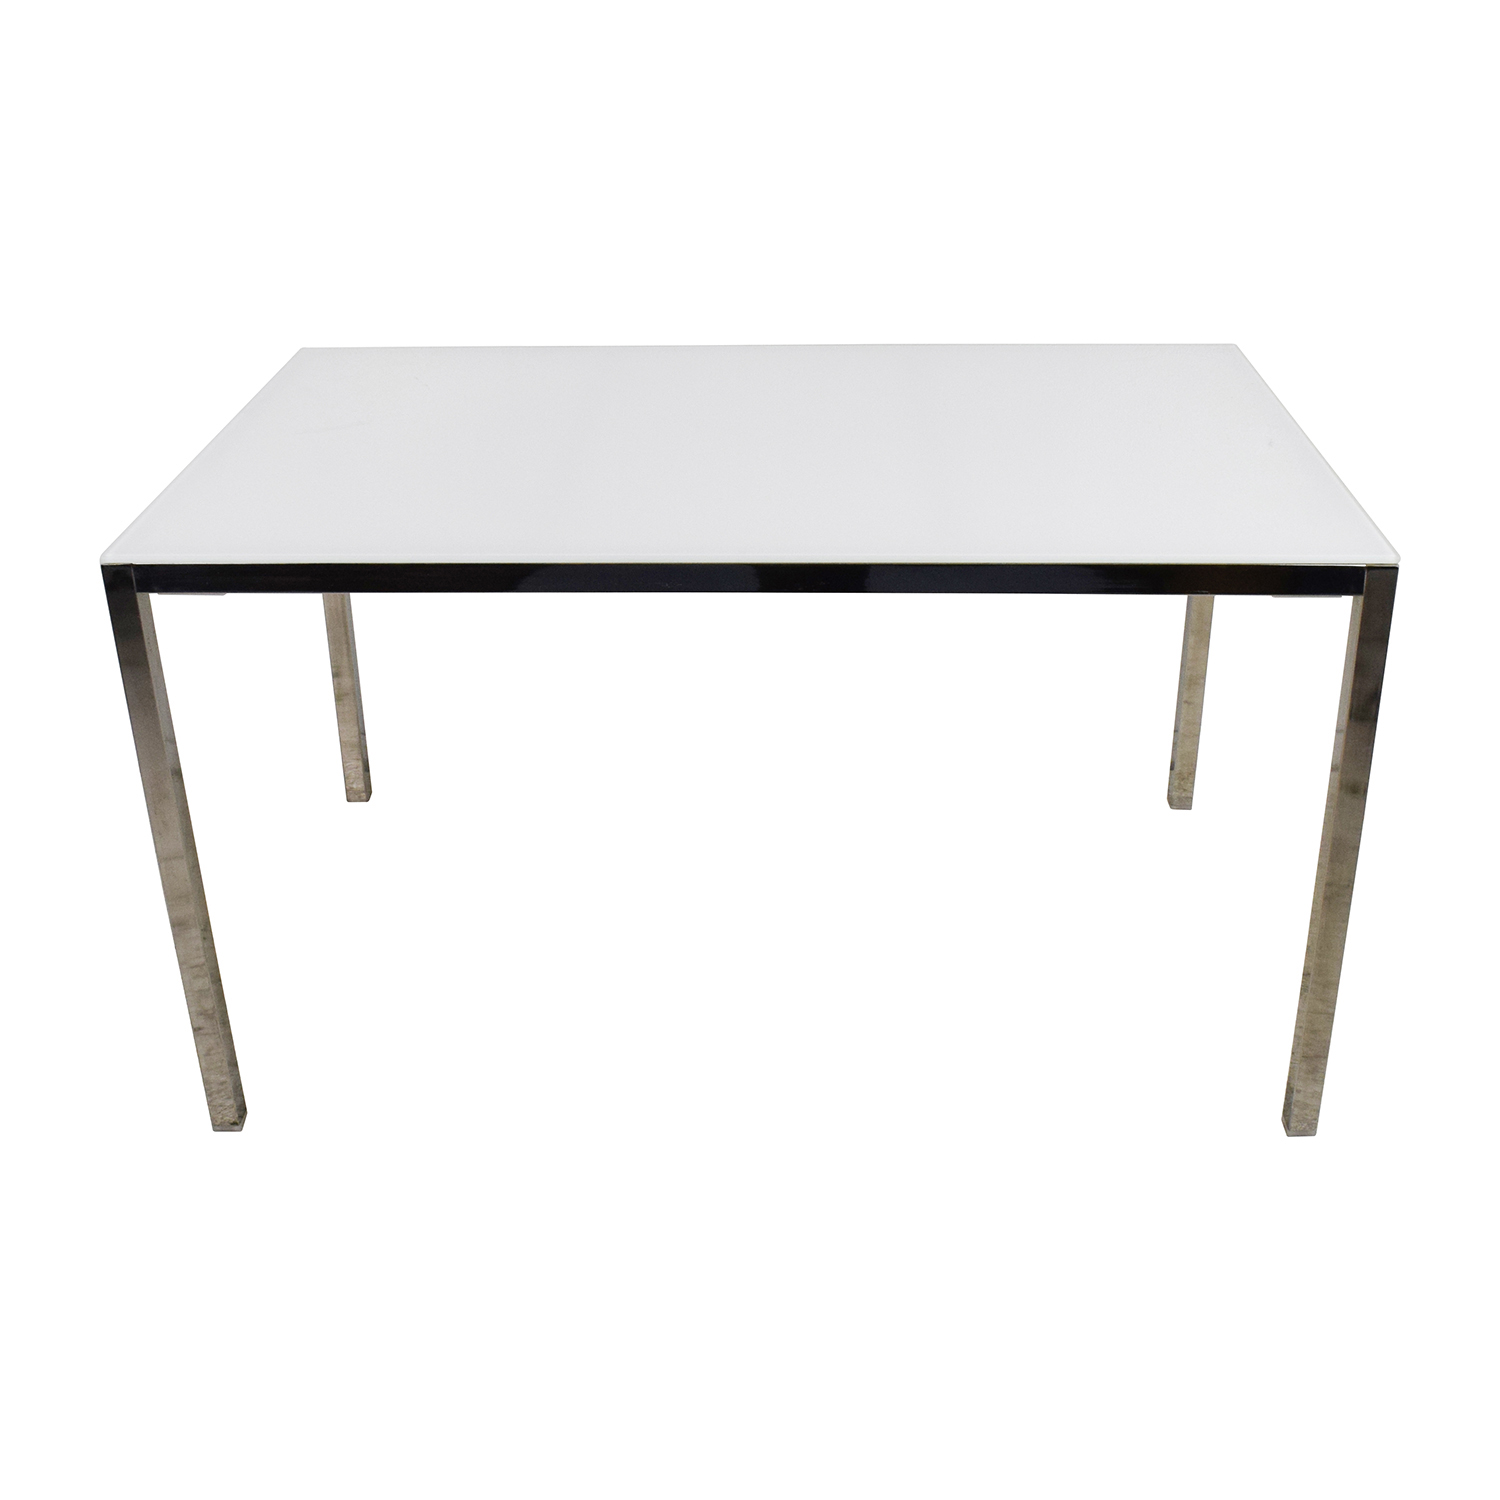 Ikea Glass Dining Table: IKEA IKEA Torsby Large Glass Top Dining Table